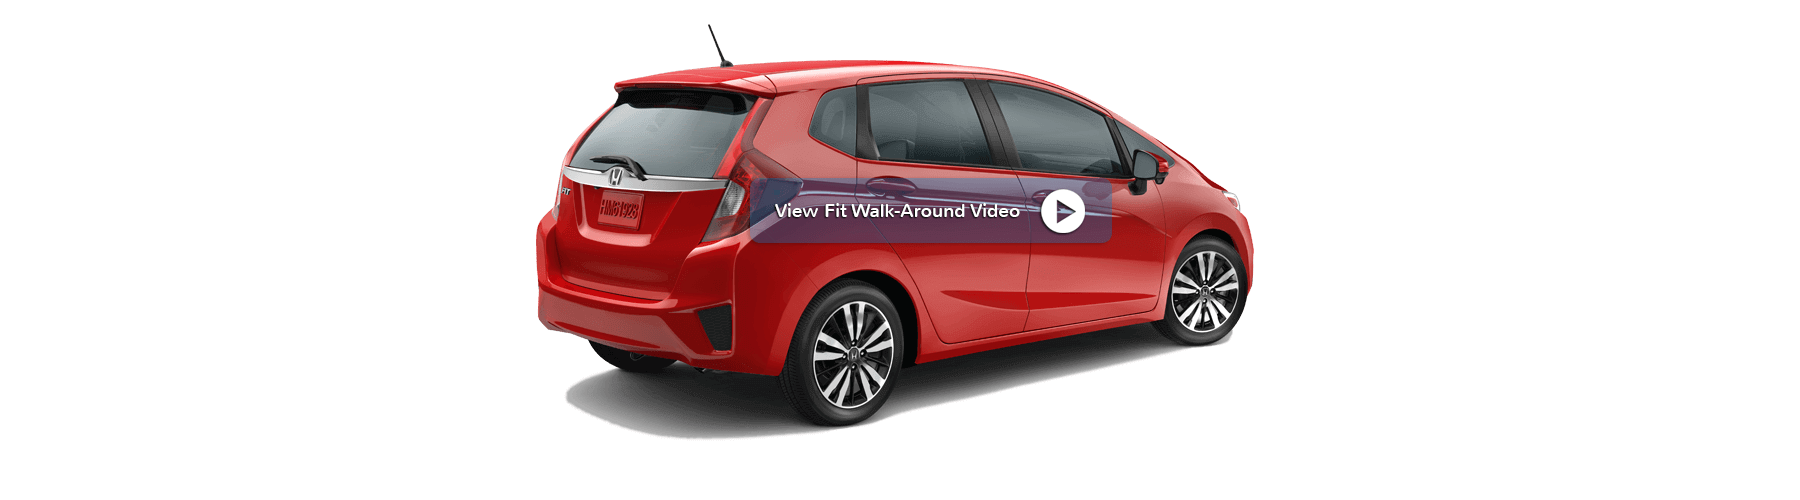 2017 Honda Fit Rear Angle